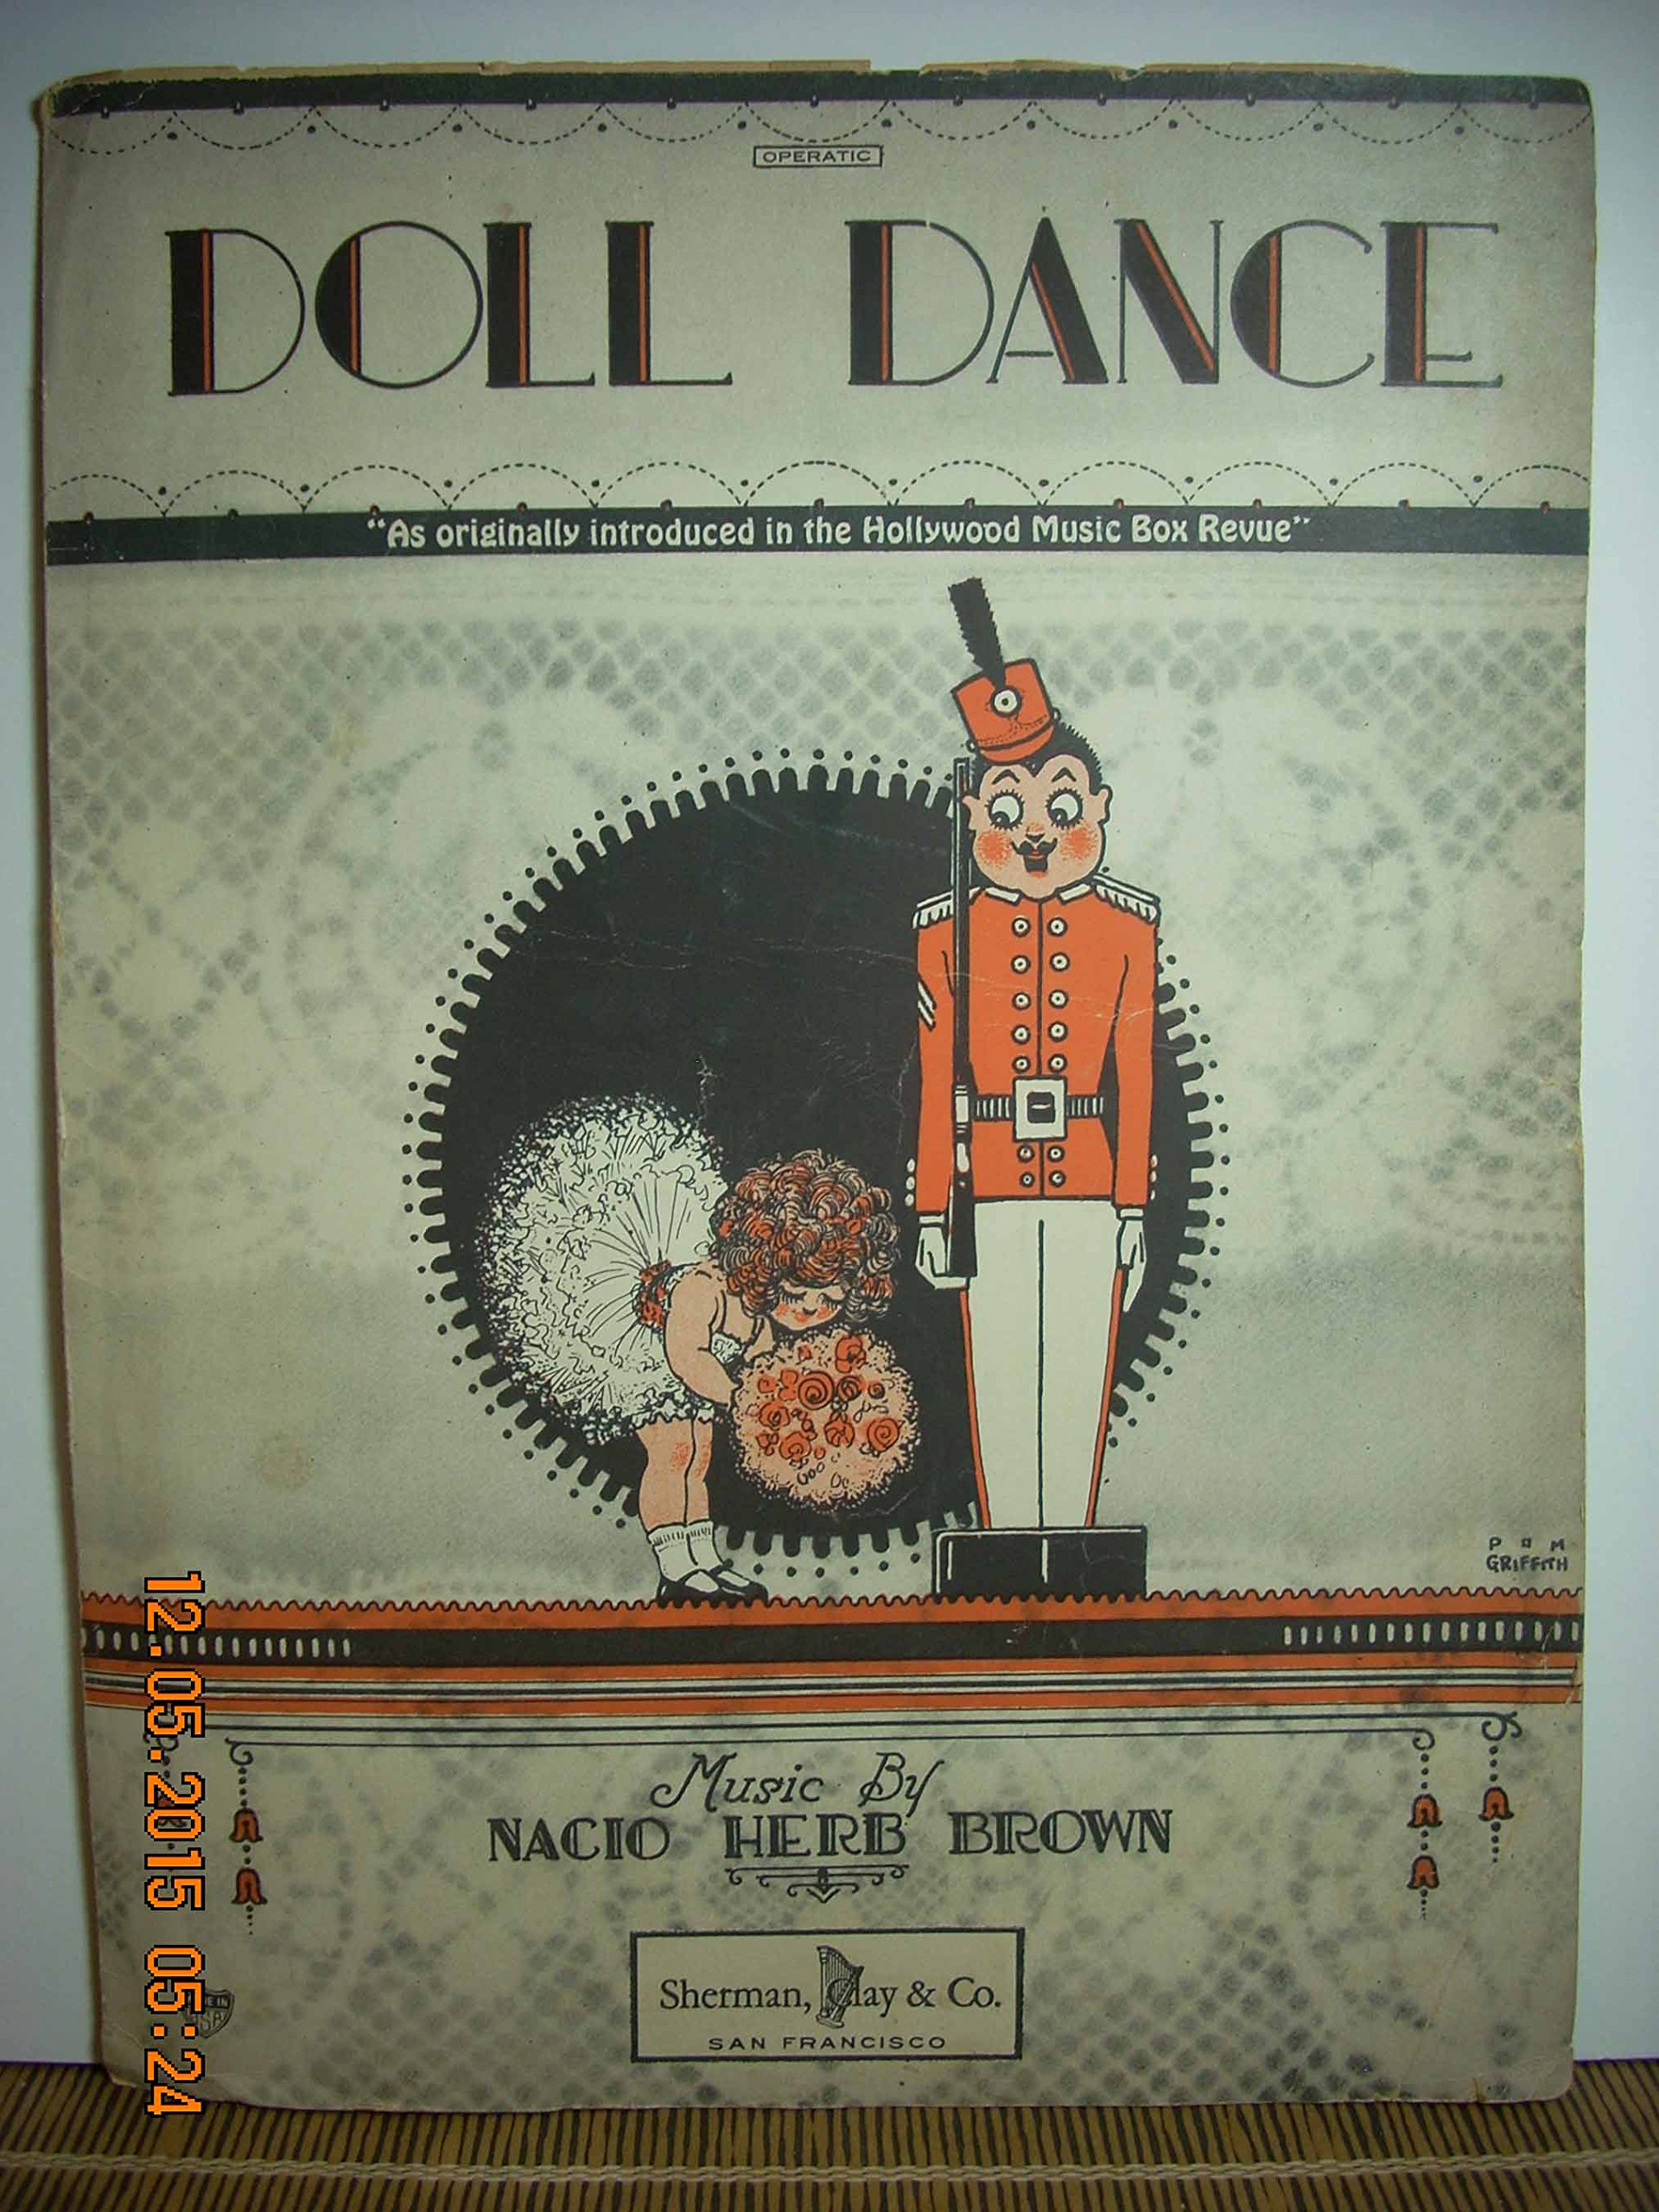 DOLL DANCE: As originally introduced in the Hollywood Music Box Revue Music by Nacio Herb Brown.